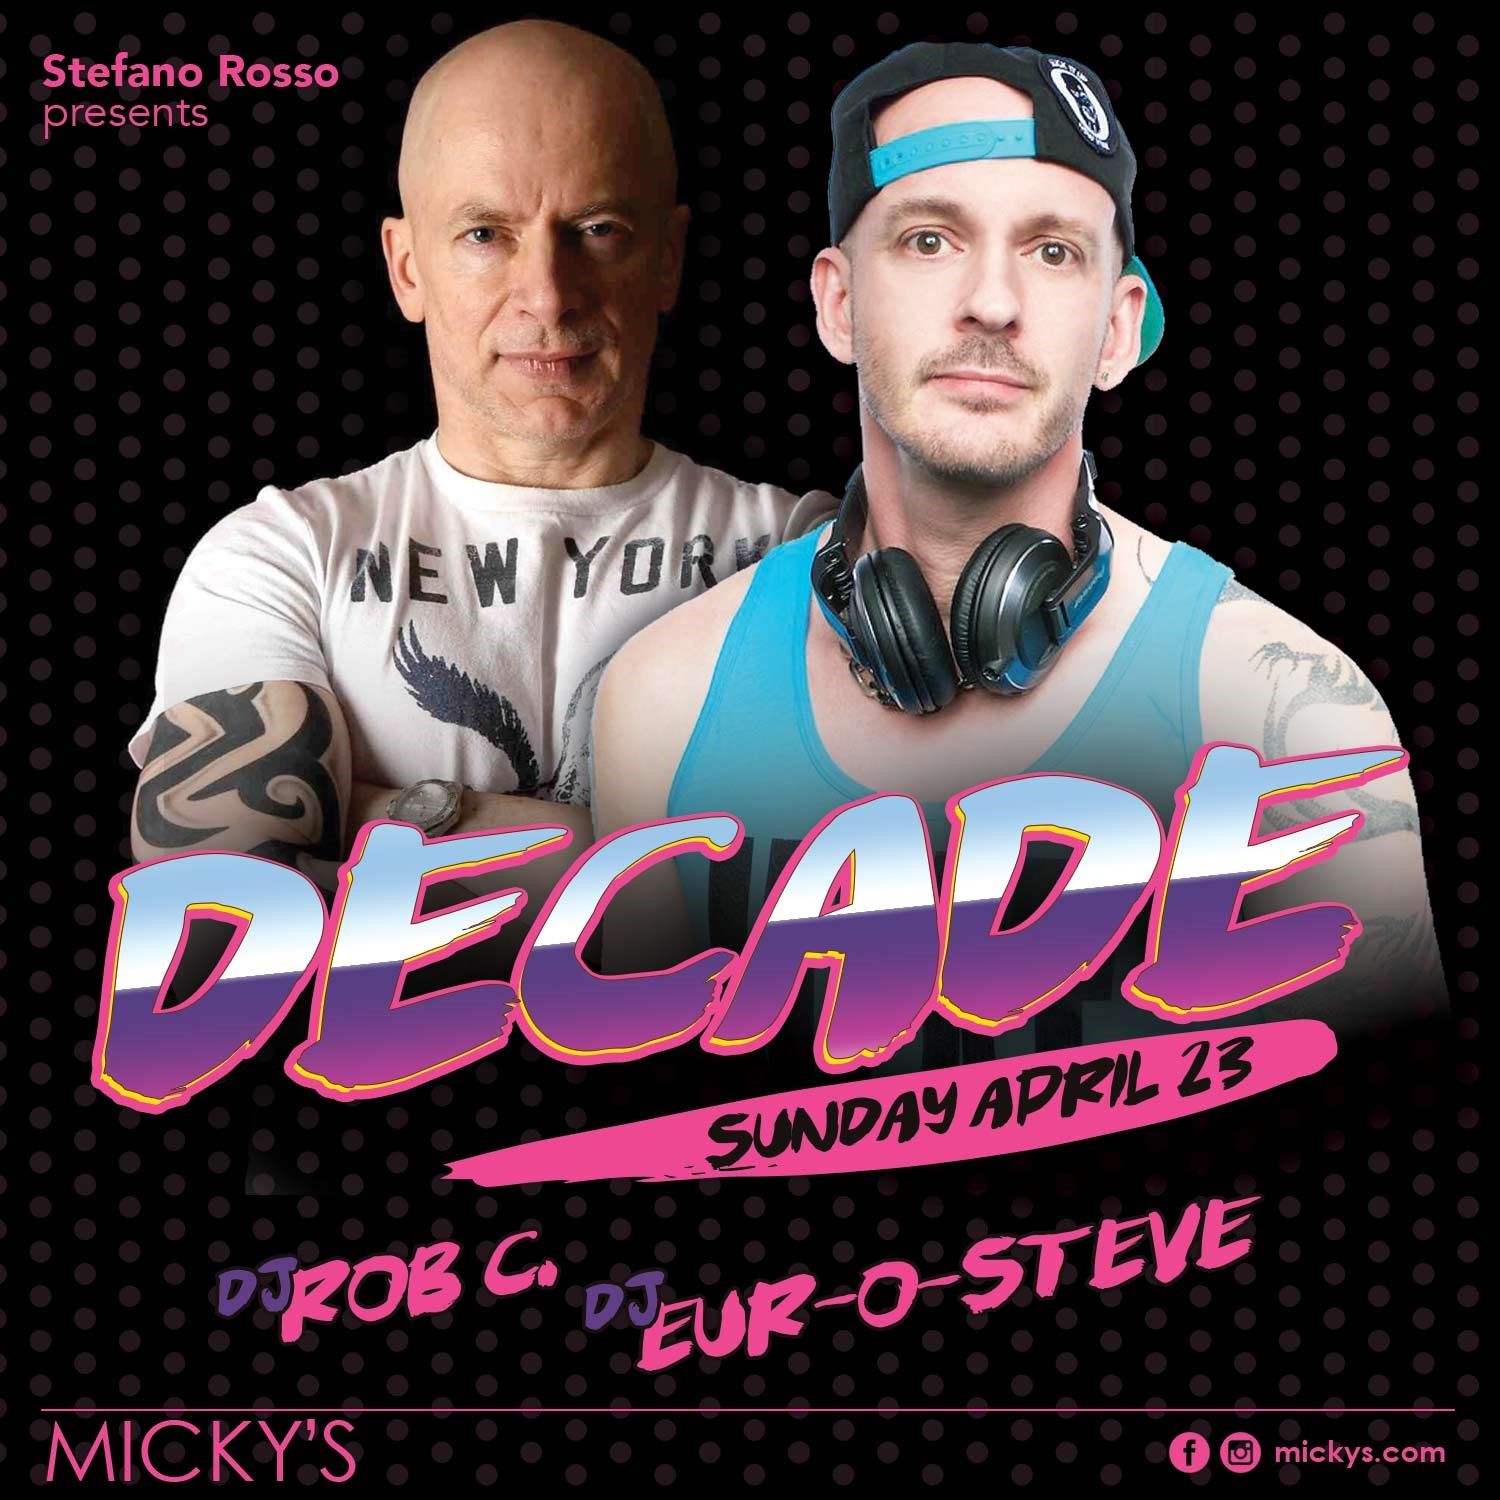 DECADE with Rob C & eur-O-steve